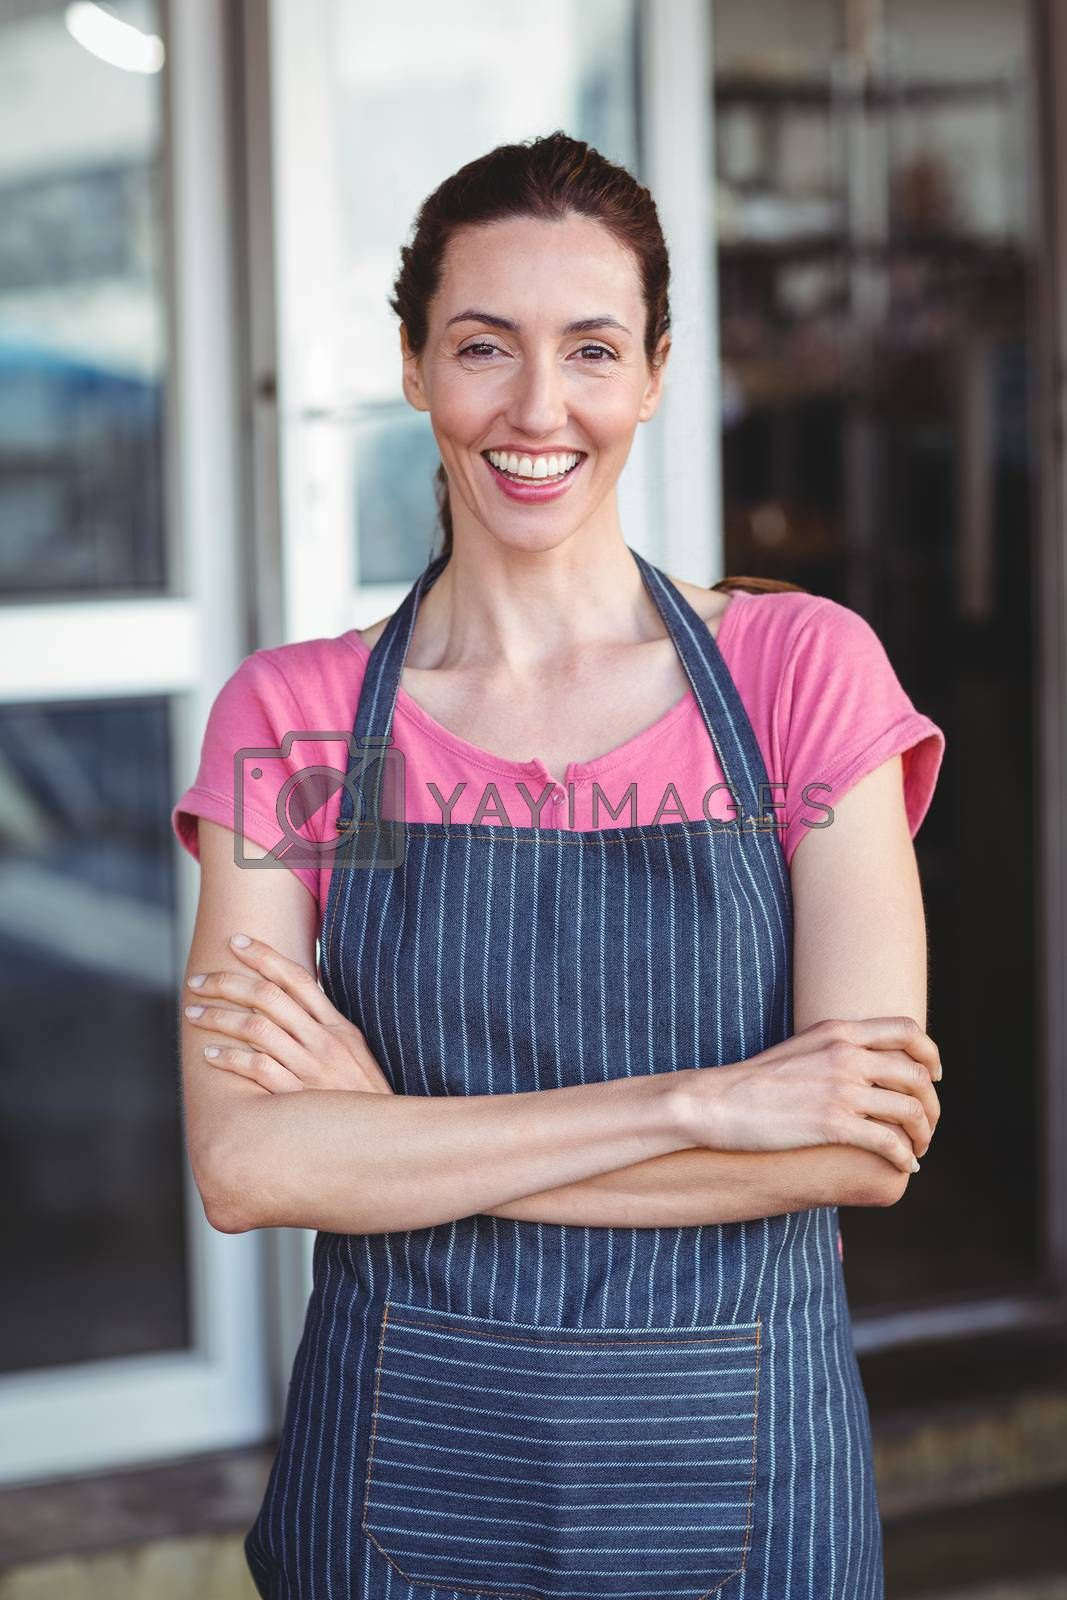 Royalty free image of Smiling worker looking at camera with arm crossed by Wavebreakmedia